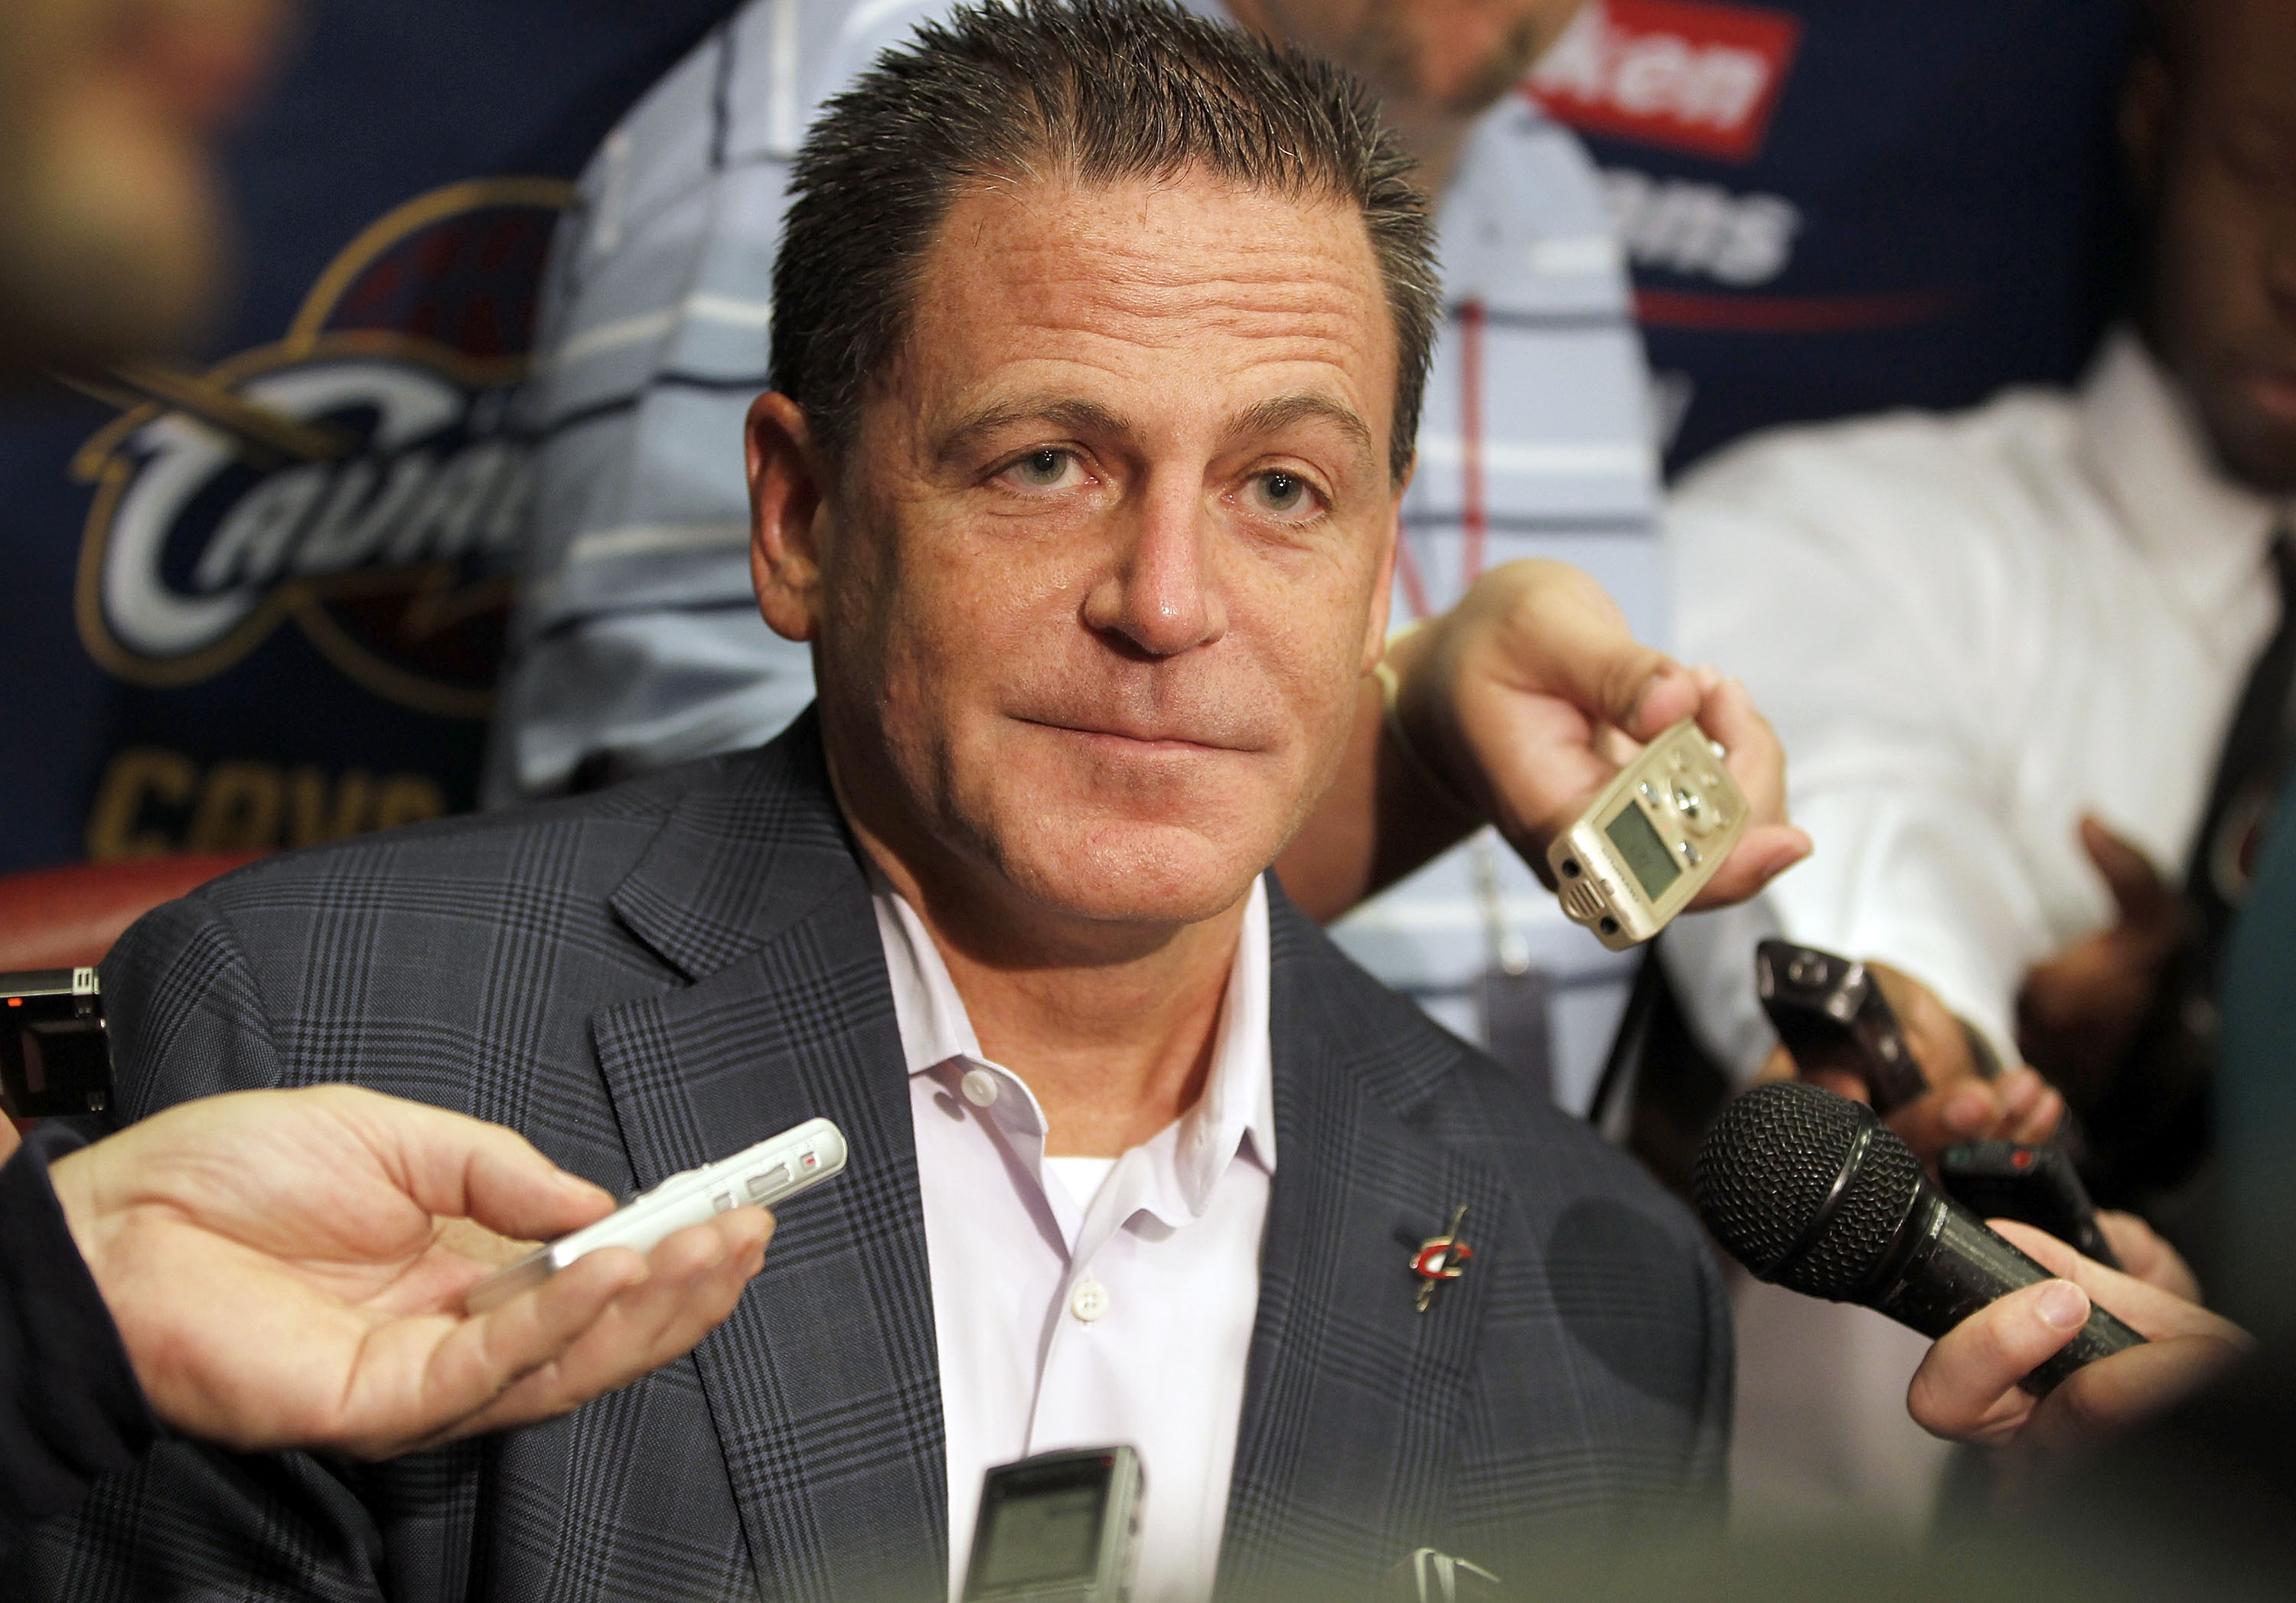 CLEVELAND - OCTOBER 27:  Majority owner Dan Gilbert of the Cleveland Cavaliers talks to the media prior to playing the Boston Celtics in the Cavaliers 2010 home opner at Quicken Loans Arena on October 27, 2010 in Cleveland, Ohio.  NOTE TO USER: User expre